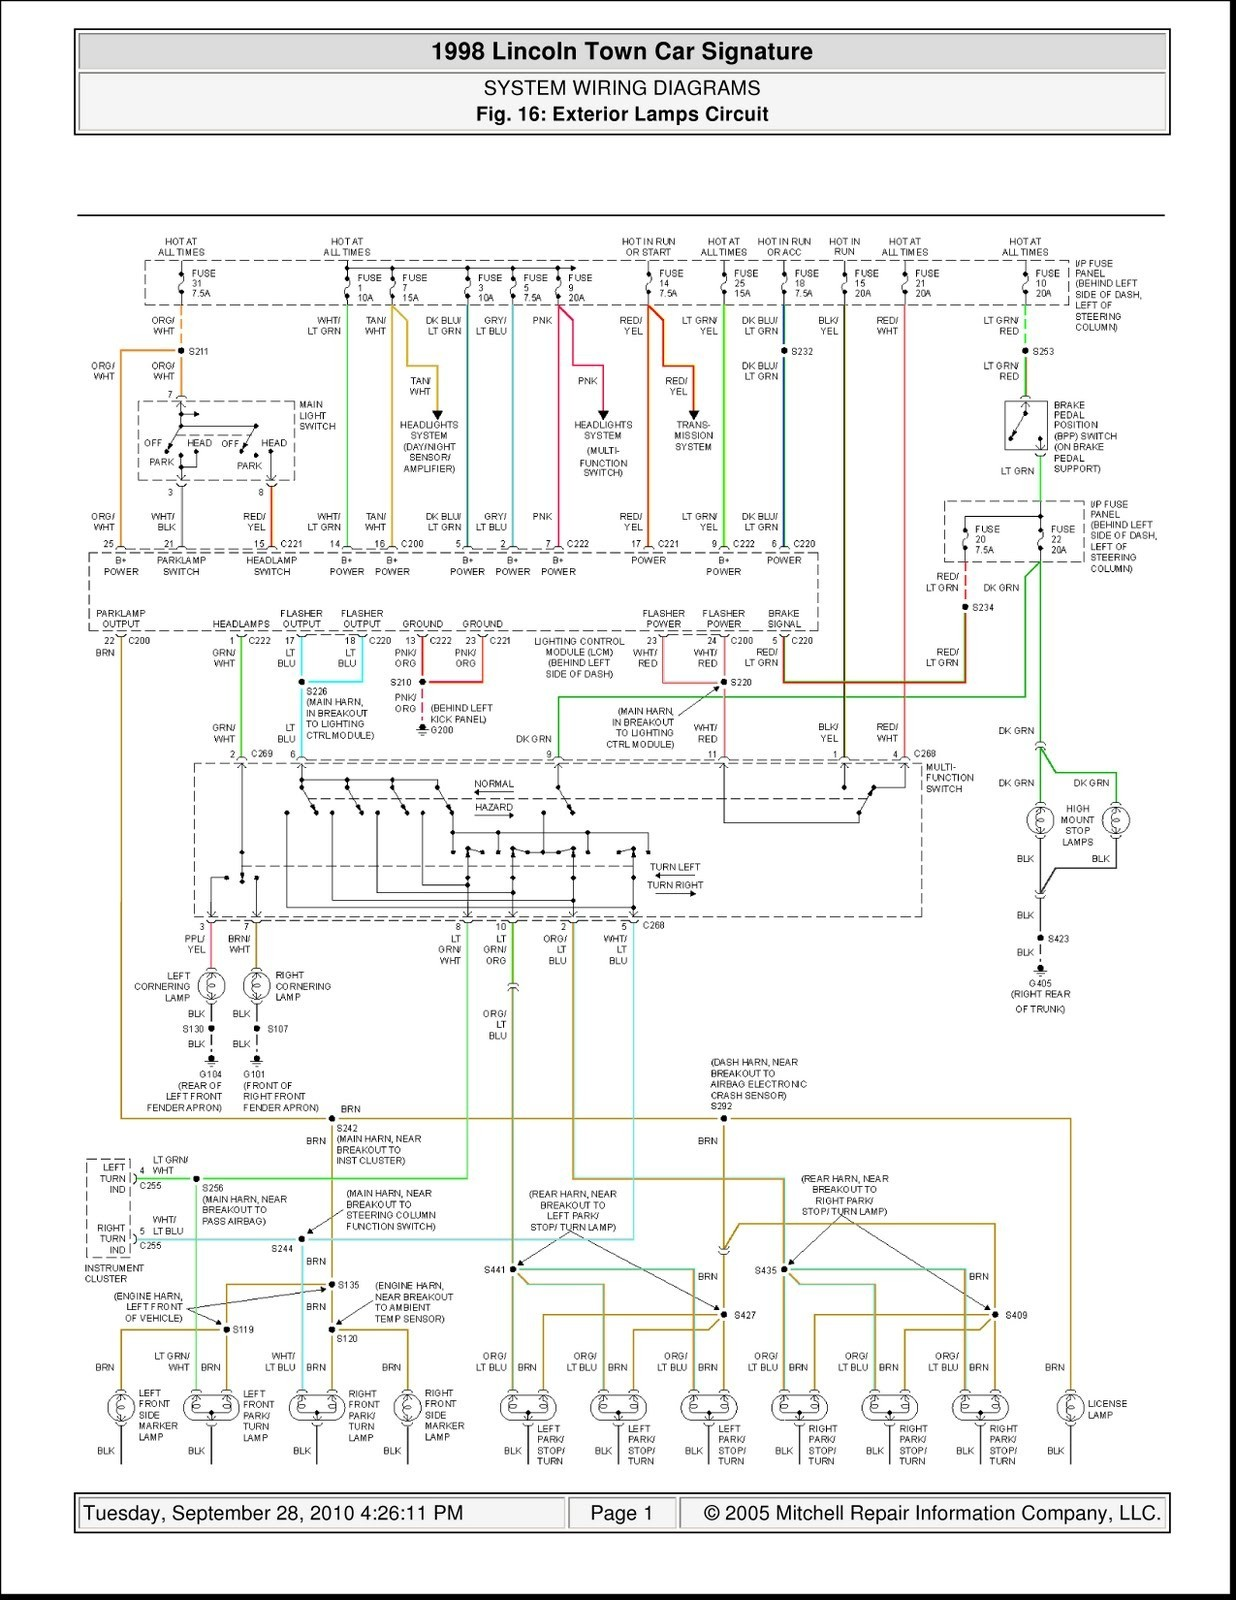 Lincoln Navigator Wiring Schematic - Wiring Diagram Experts on 01 mitsubishi diamante fuse box, 01 dodge caravan fuse box, 01 dodge stratus fuse box, 2001 lincoln continental fuse box, 01 volvo v70 fuse box, 01 dodge intrepid fuse box, 01 pontiac grand am fuse box, 01 toyota sequoia fuse box, 01 chrysler sebring fuse box, 01 chevy blazer fuse box, lincoln town car fuse box,